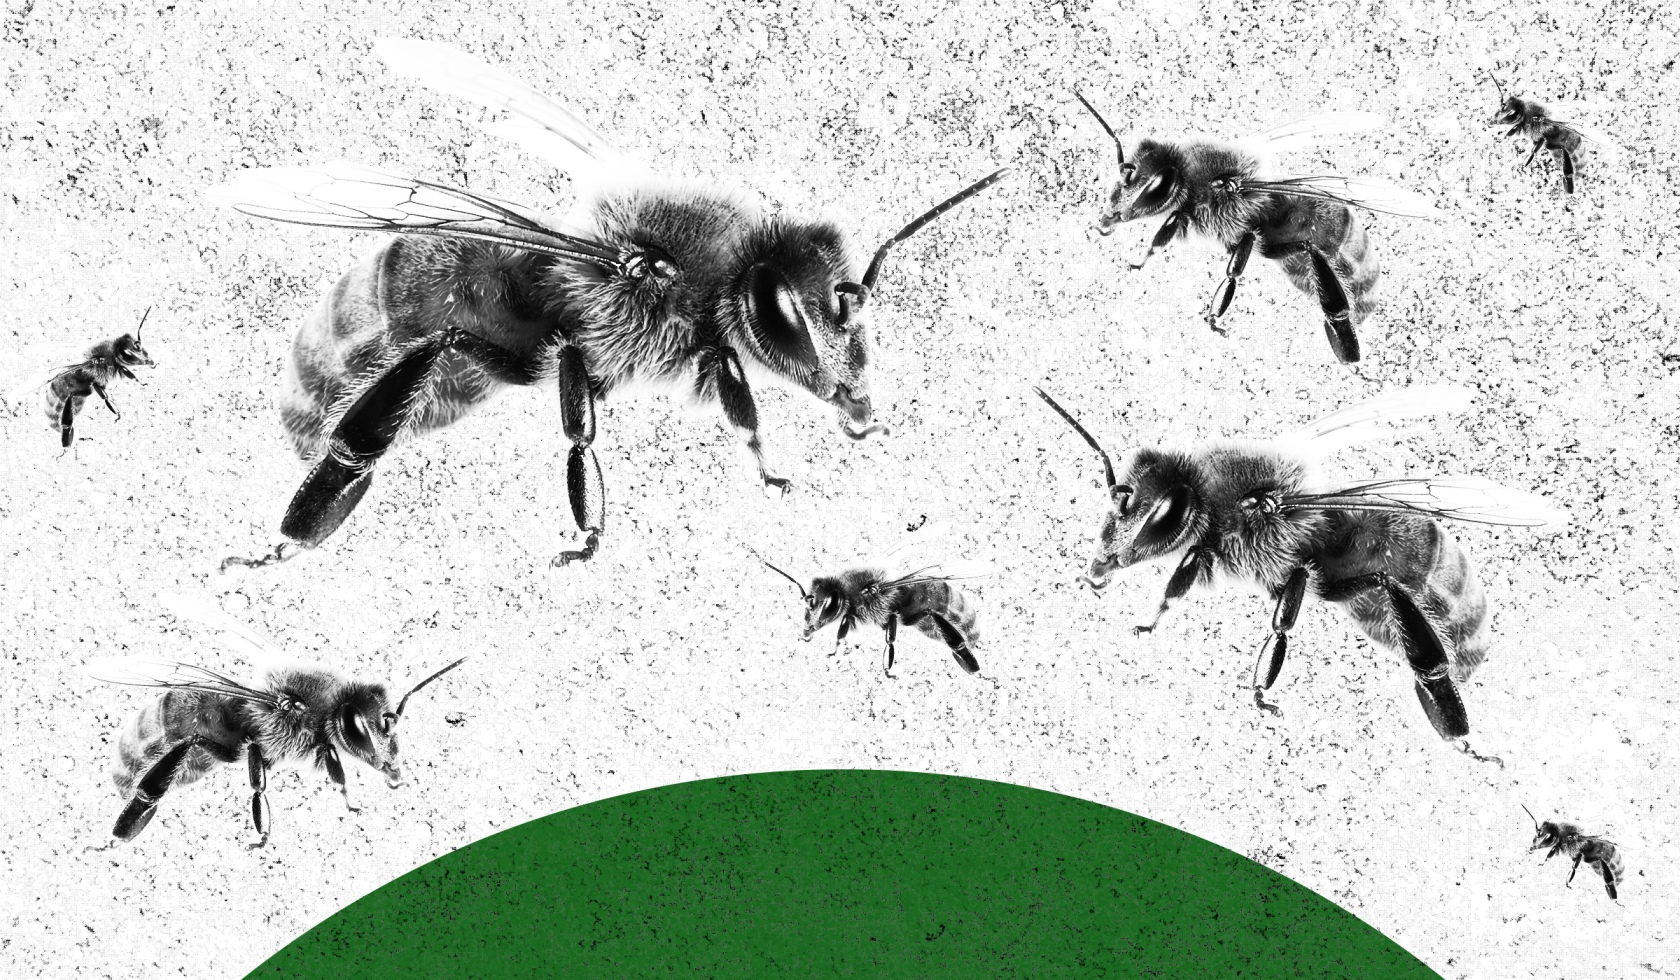 Honey Bees, Worker Bees, and the Economic Violence of Land Grabs